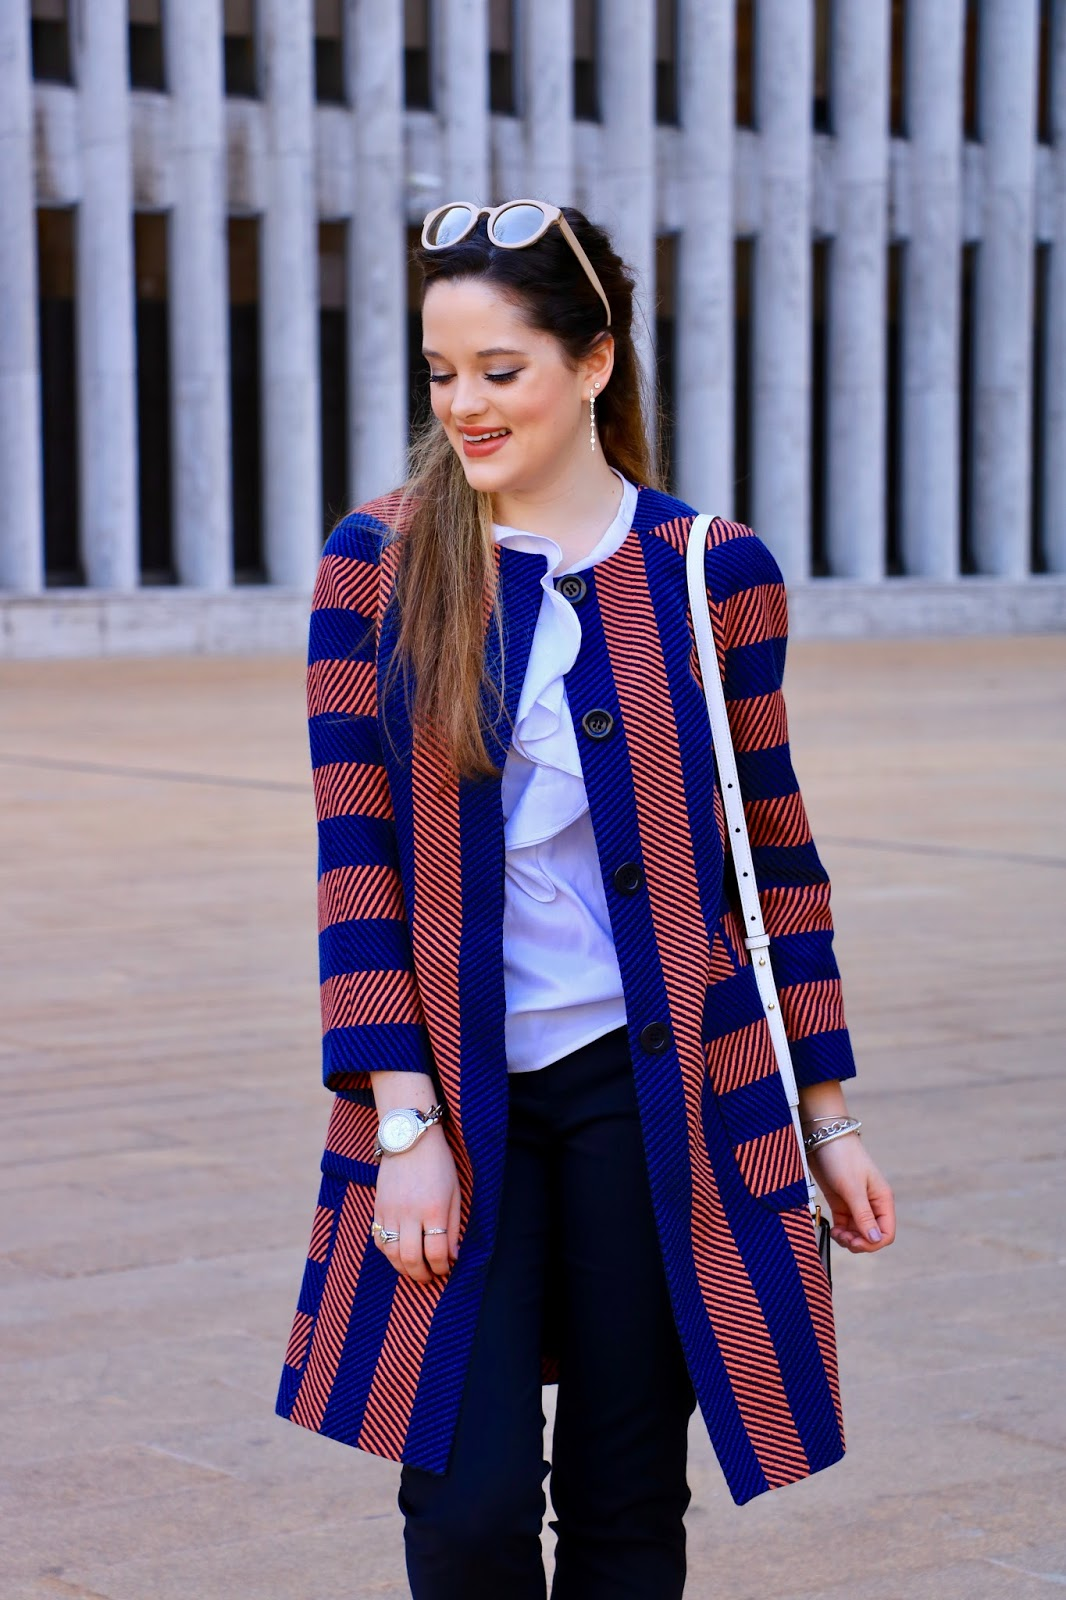 striped topcoat